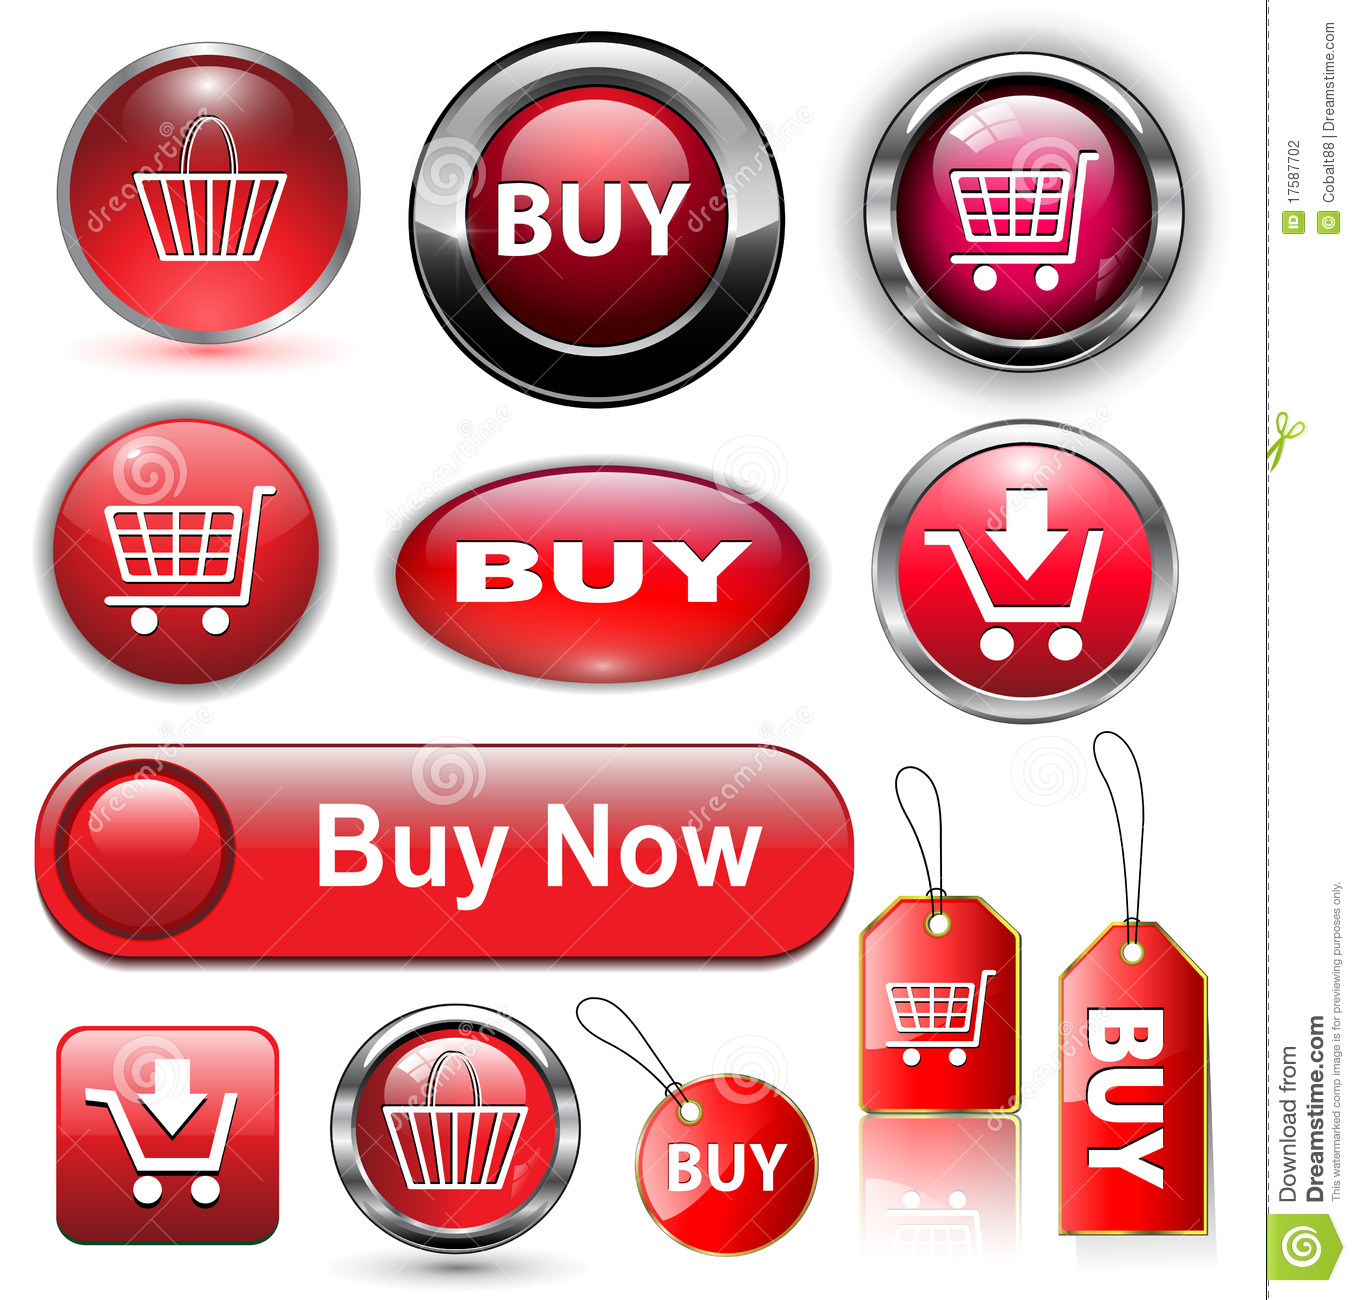 Buy Button: Buy Buttons, Icons Set. Stock Vector. Illustration Of